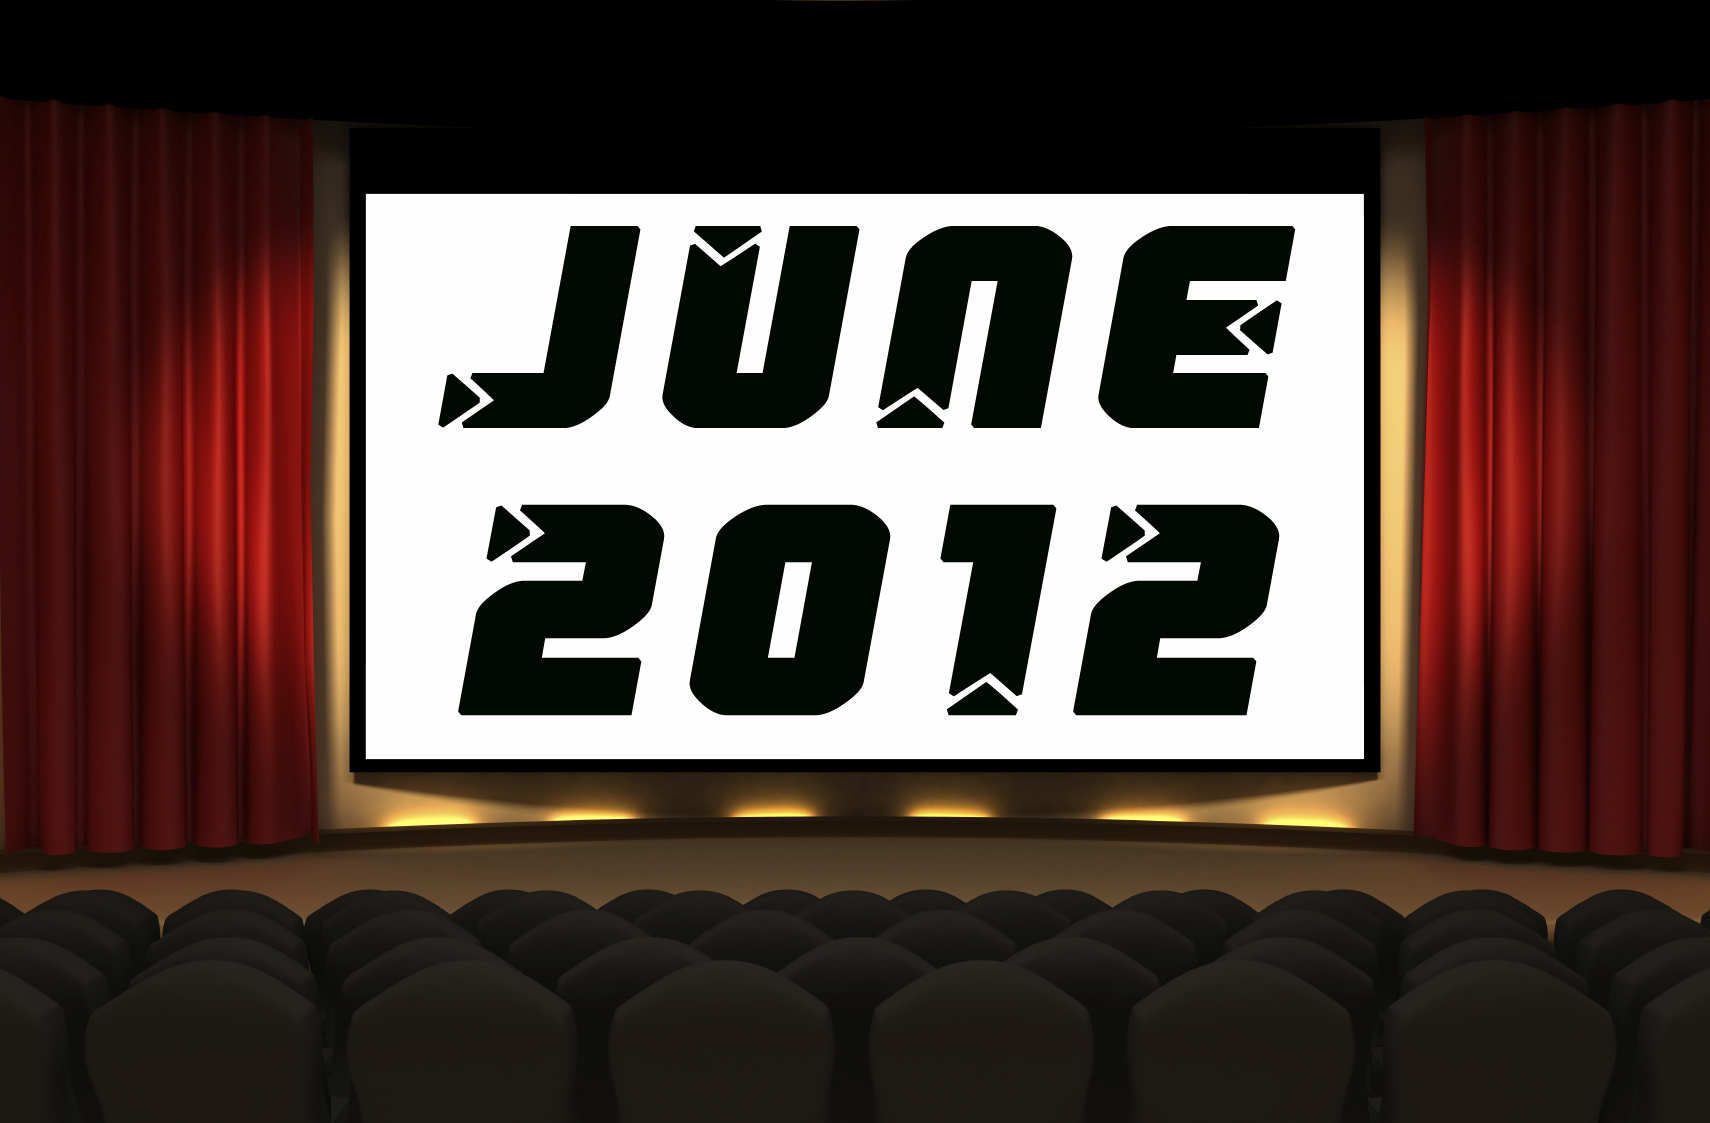 Thoughts On Film - June 2012 cinema poll